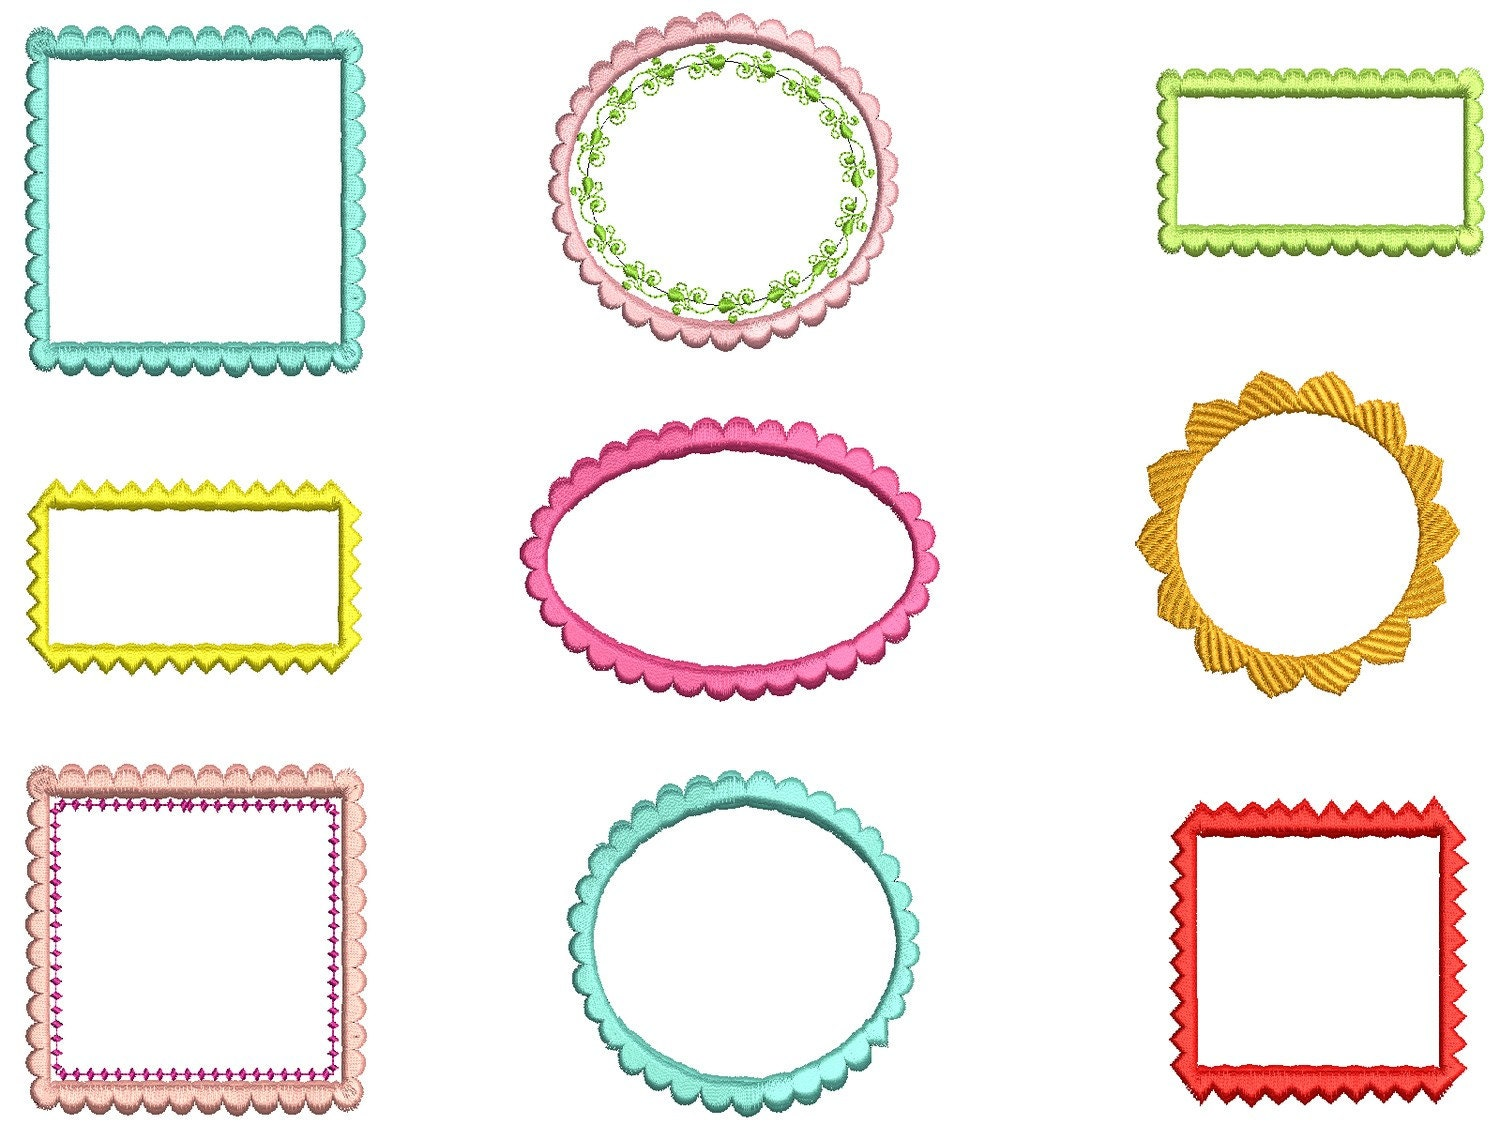 free machine embroidery frame designs